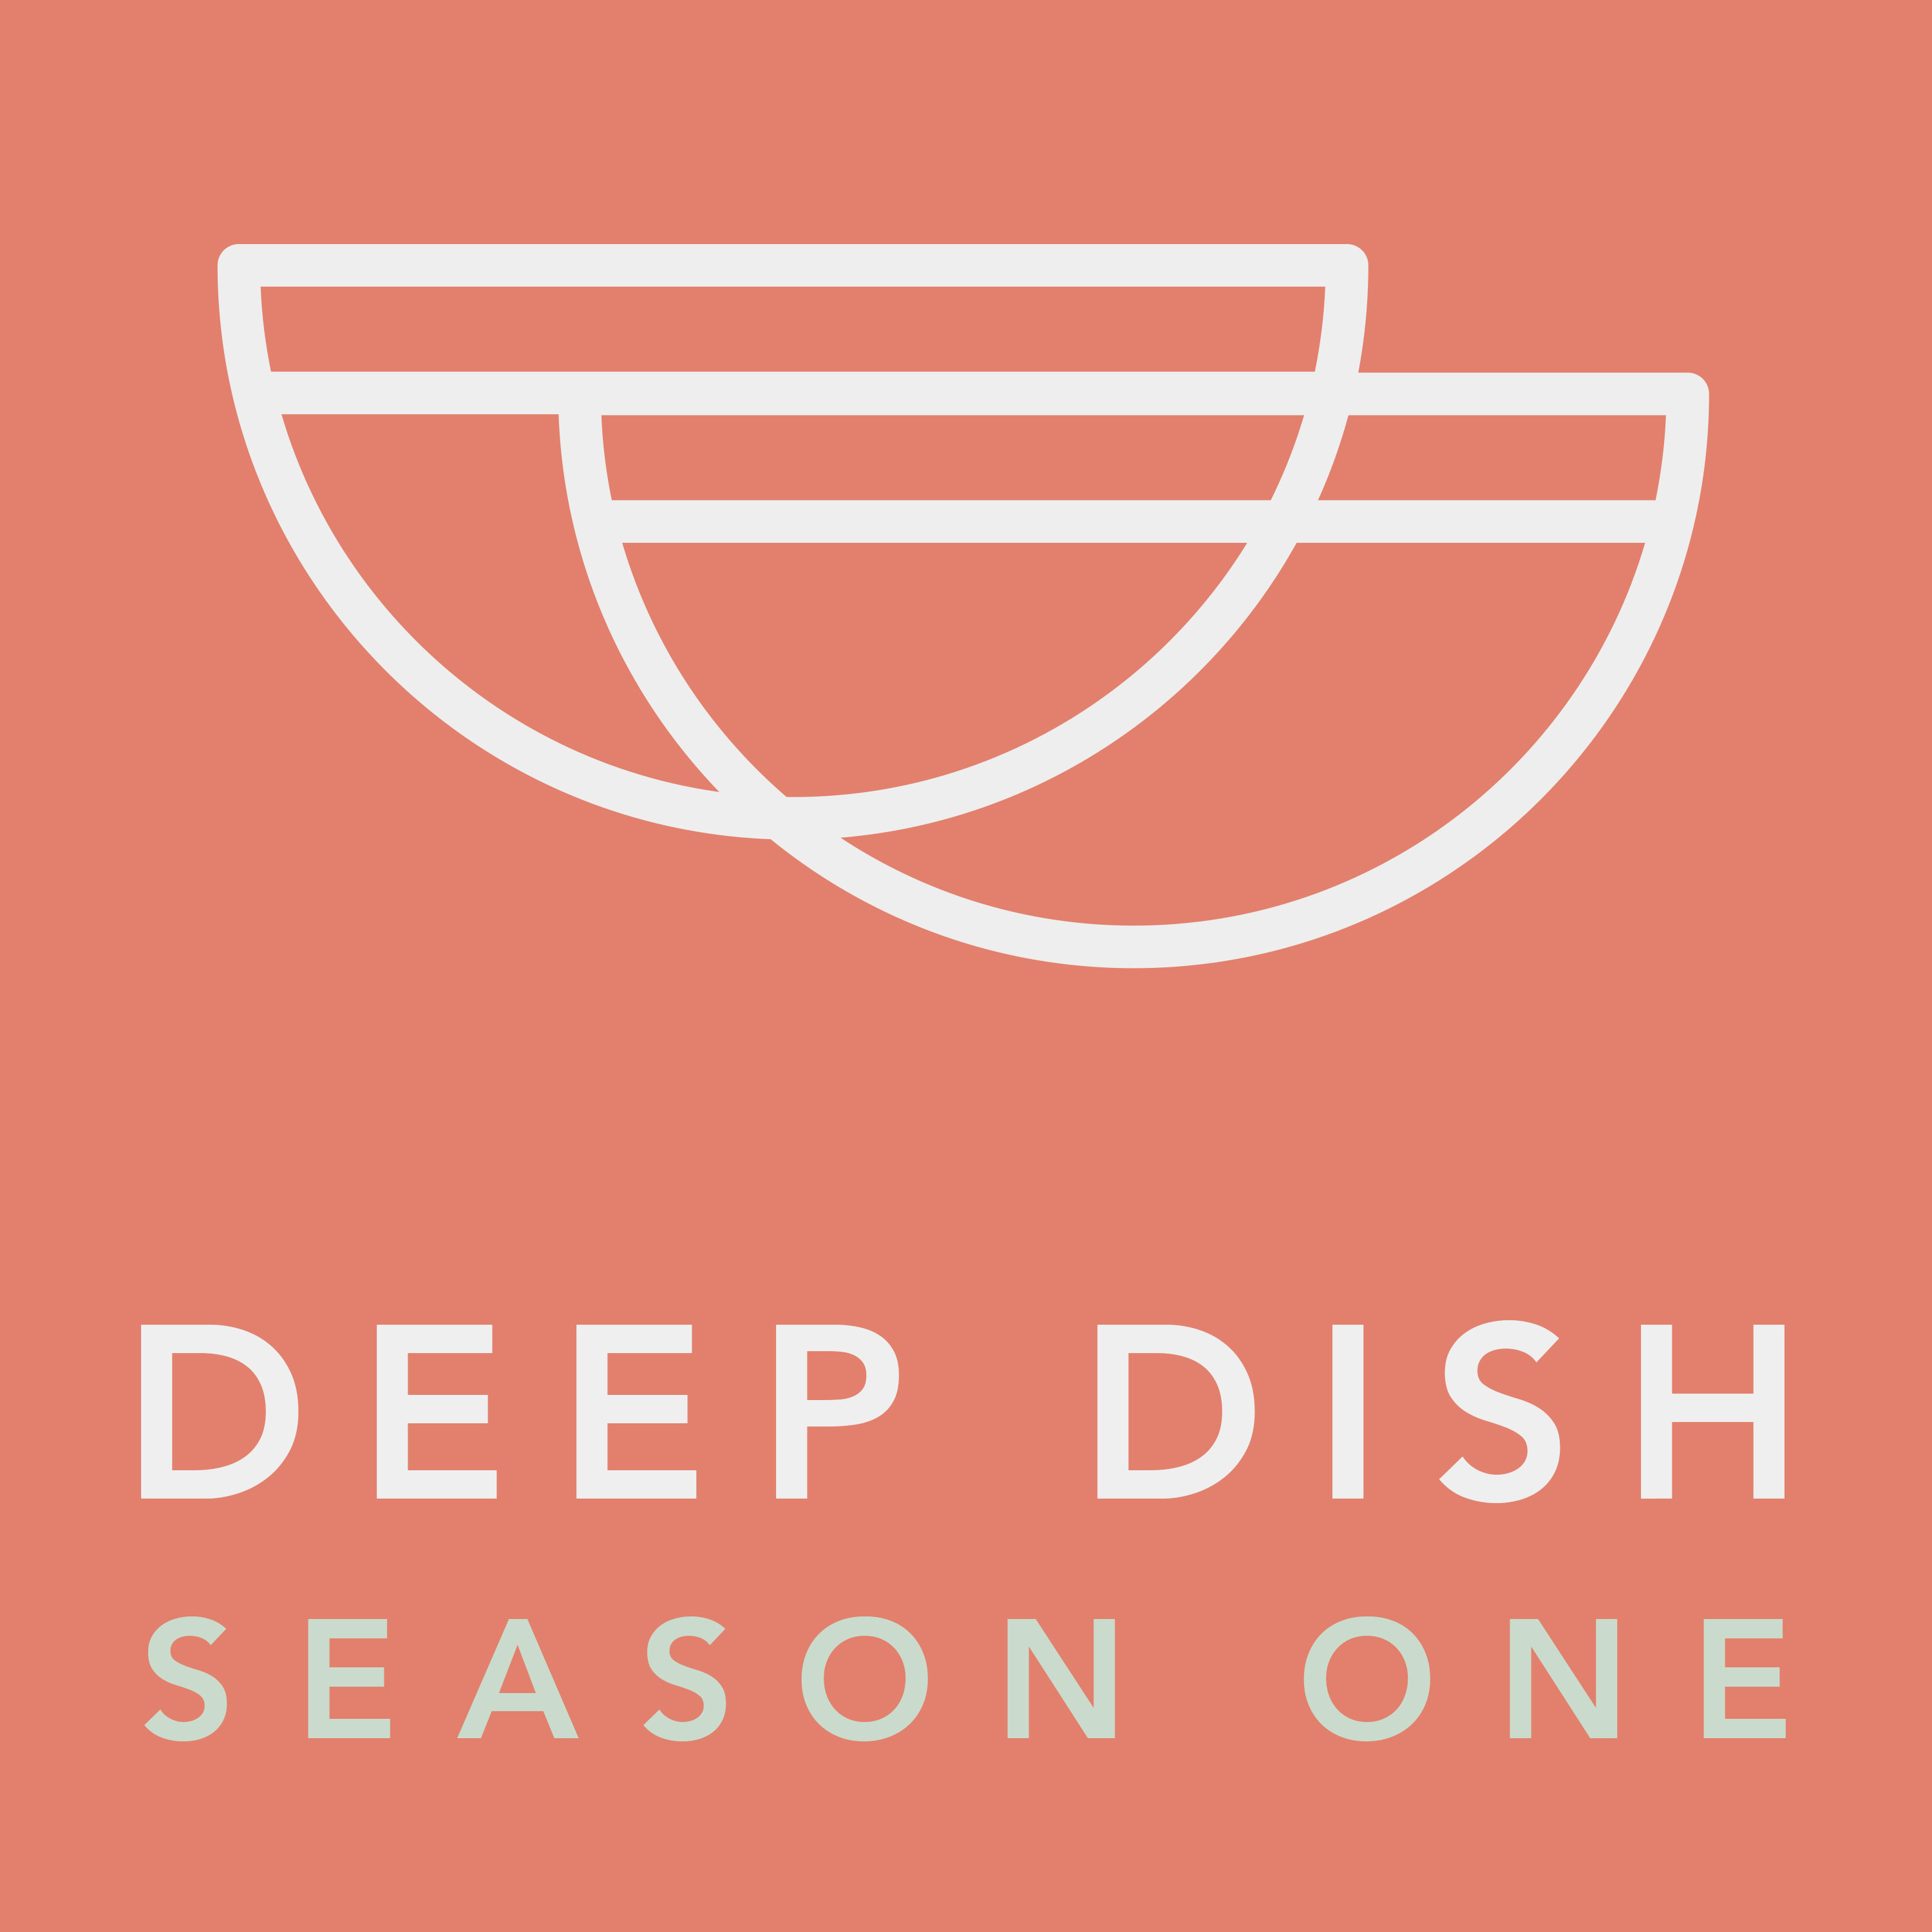 Deep Dish Season 1 - The All American Meal